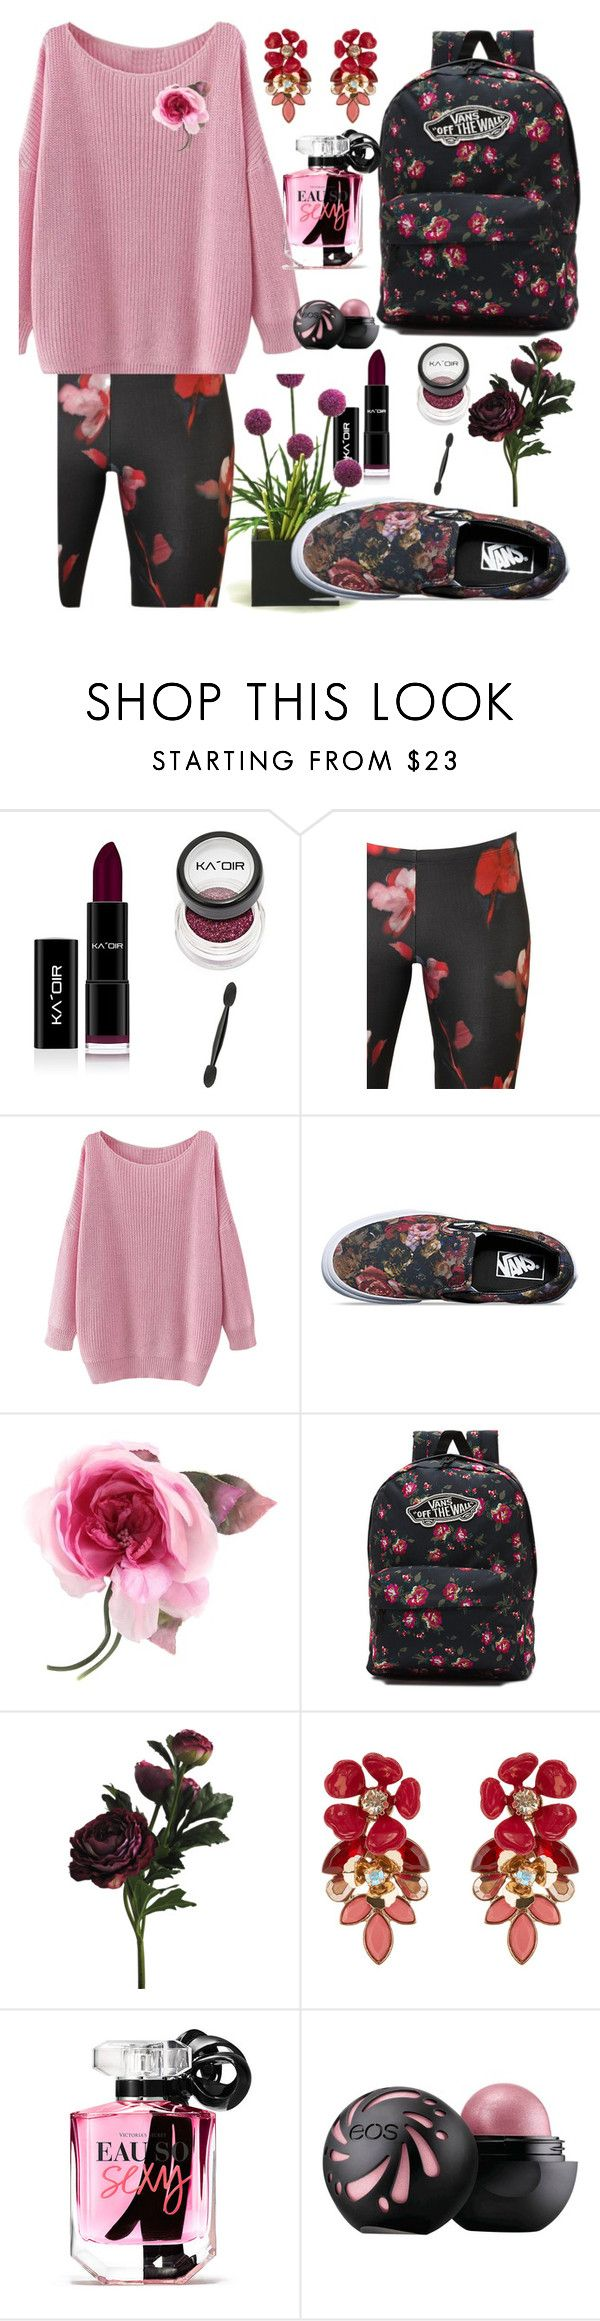 """""""flowers"""" by daliaoutfits ❤ liked on Polyvore featuring Black Coral, Vans, Gucci, Accessorize and Victoria's Secret"""